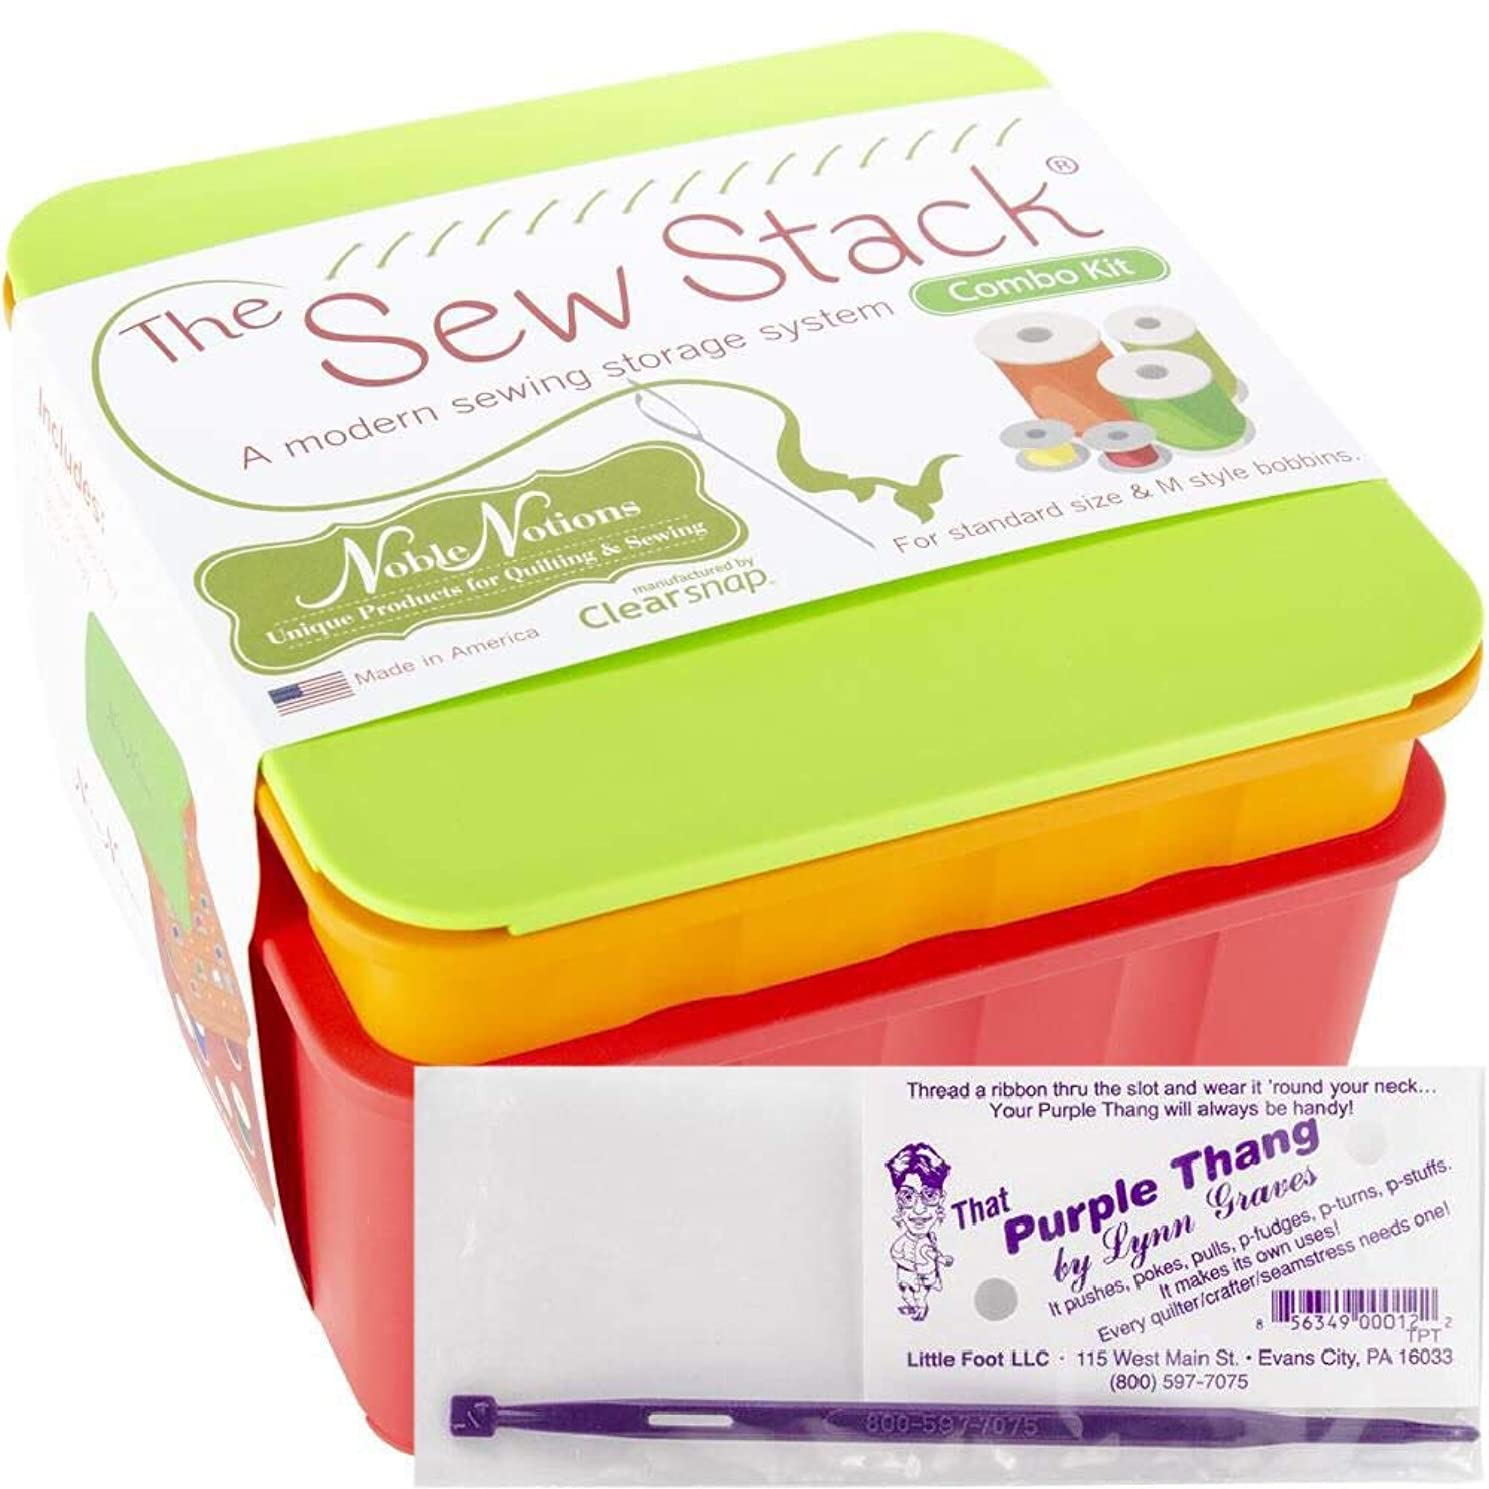 2 Item Bundle: Sew Stack Combo and That Purple Thang